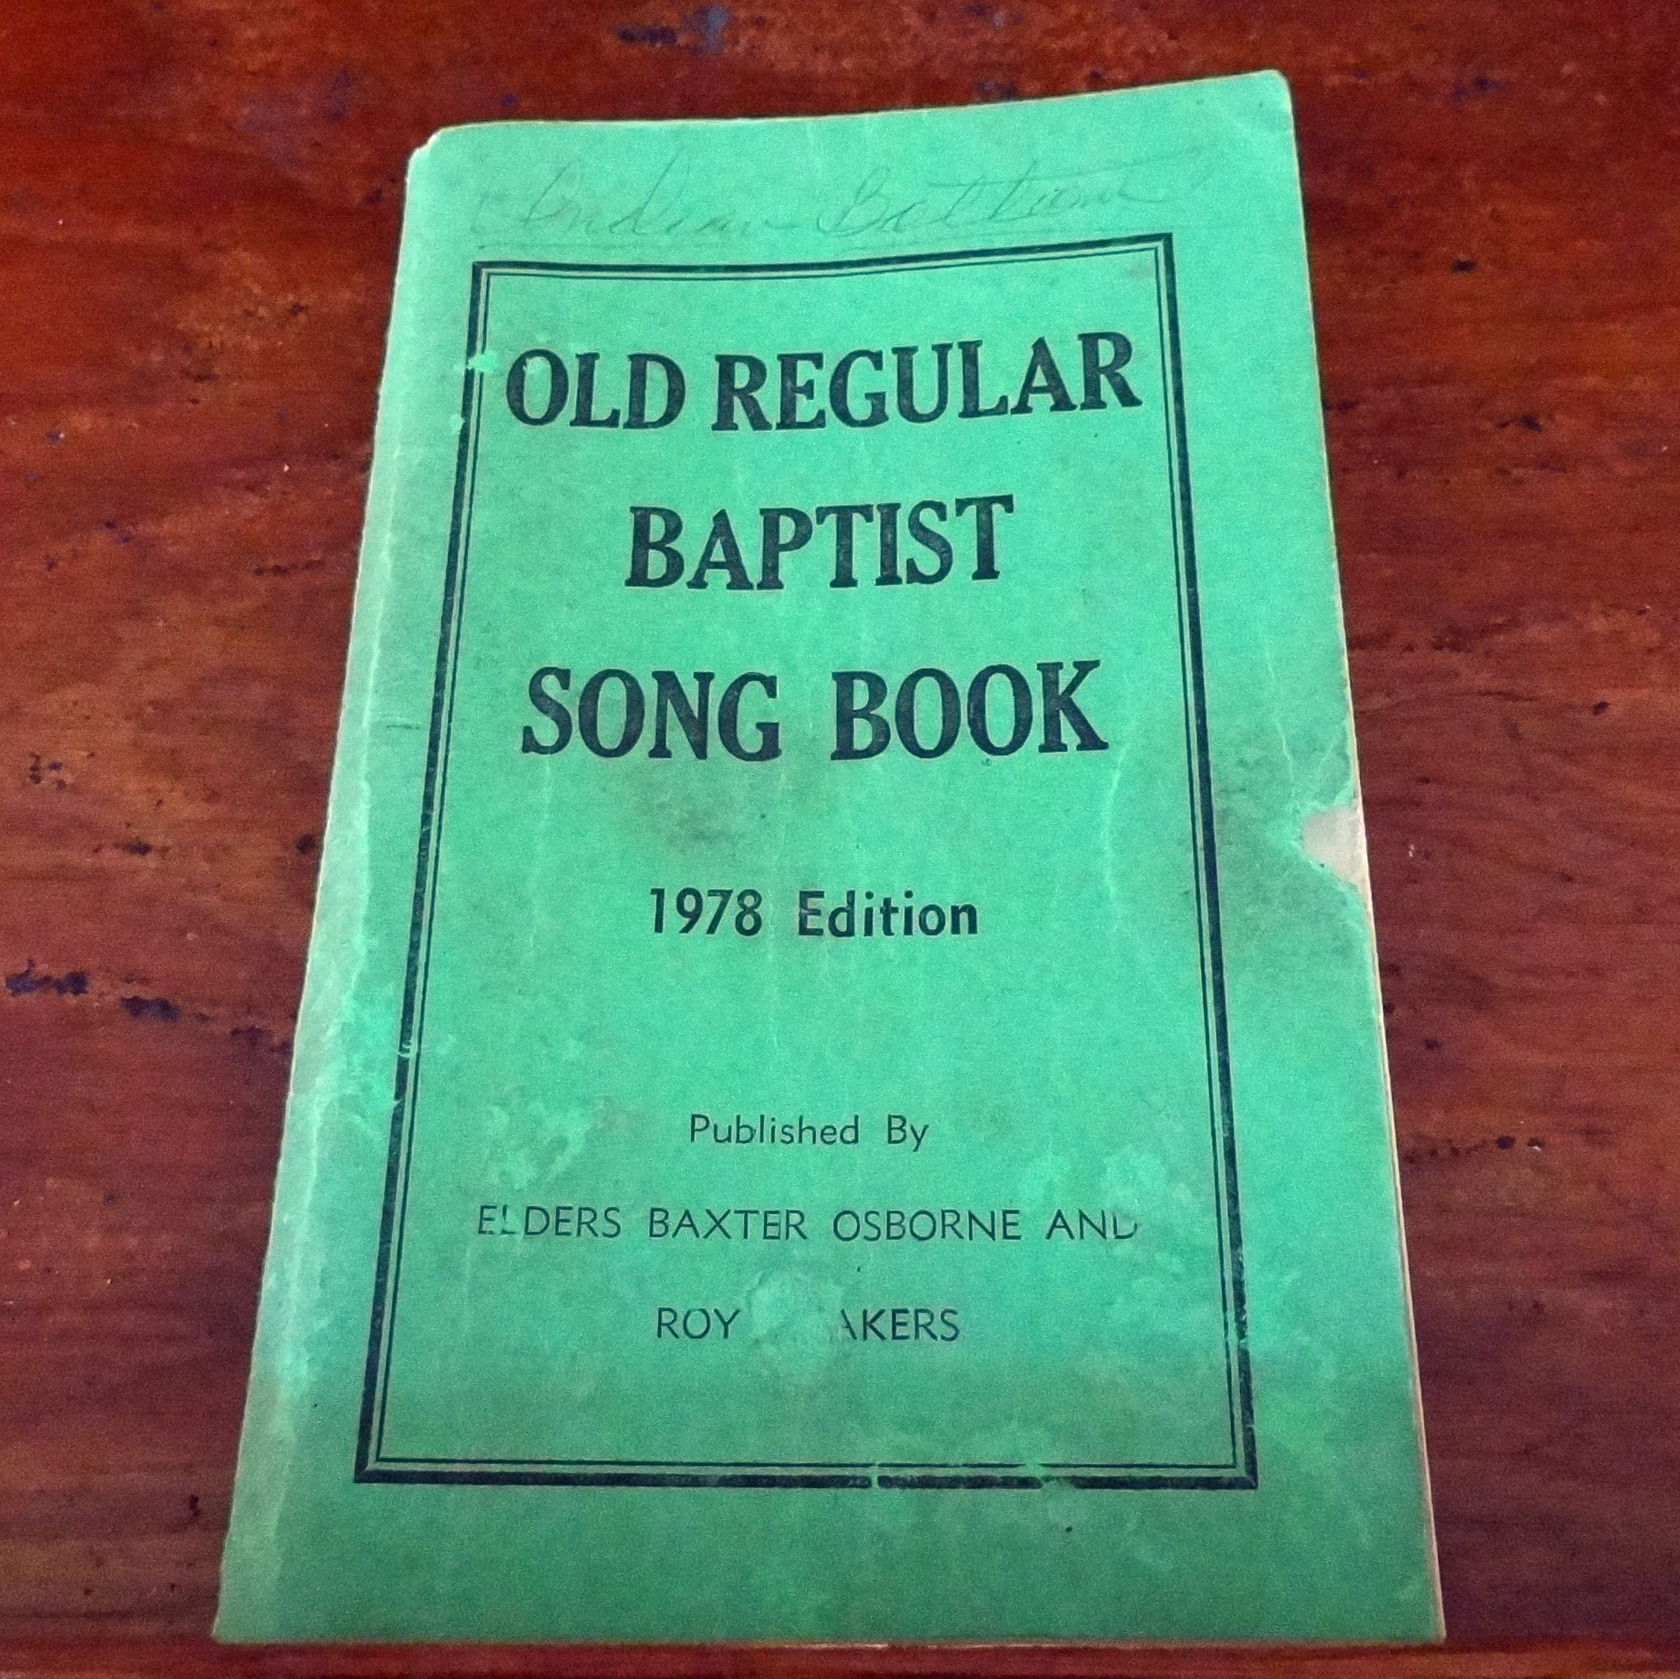 Unlike sacred harp or shape-note singing, the call-and-response hymns of the Old Regular Baptist songbook have no musical notation.